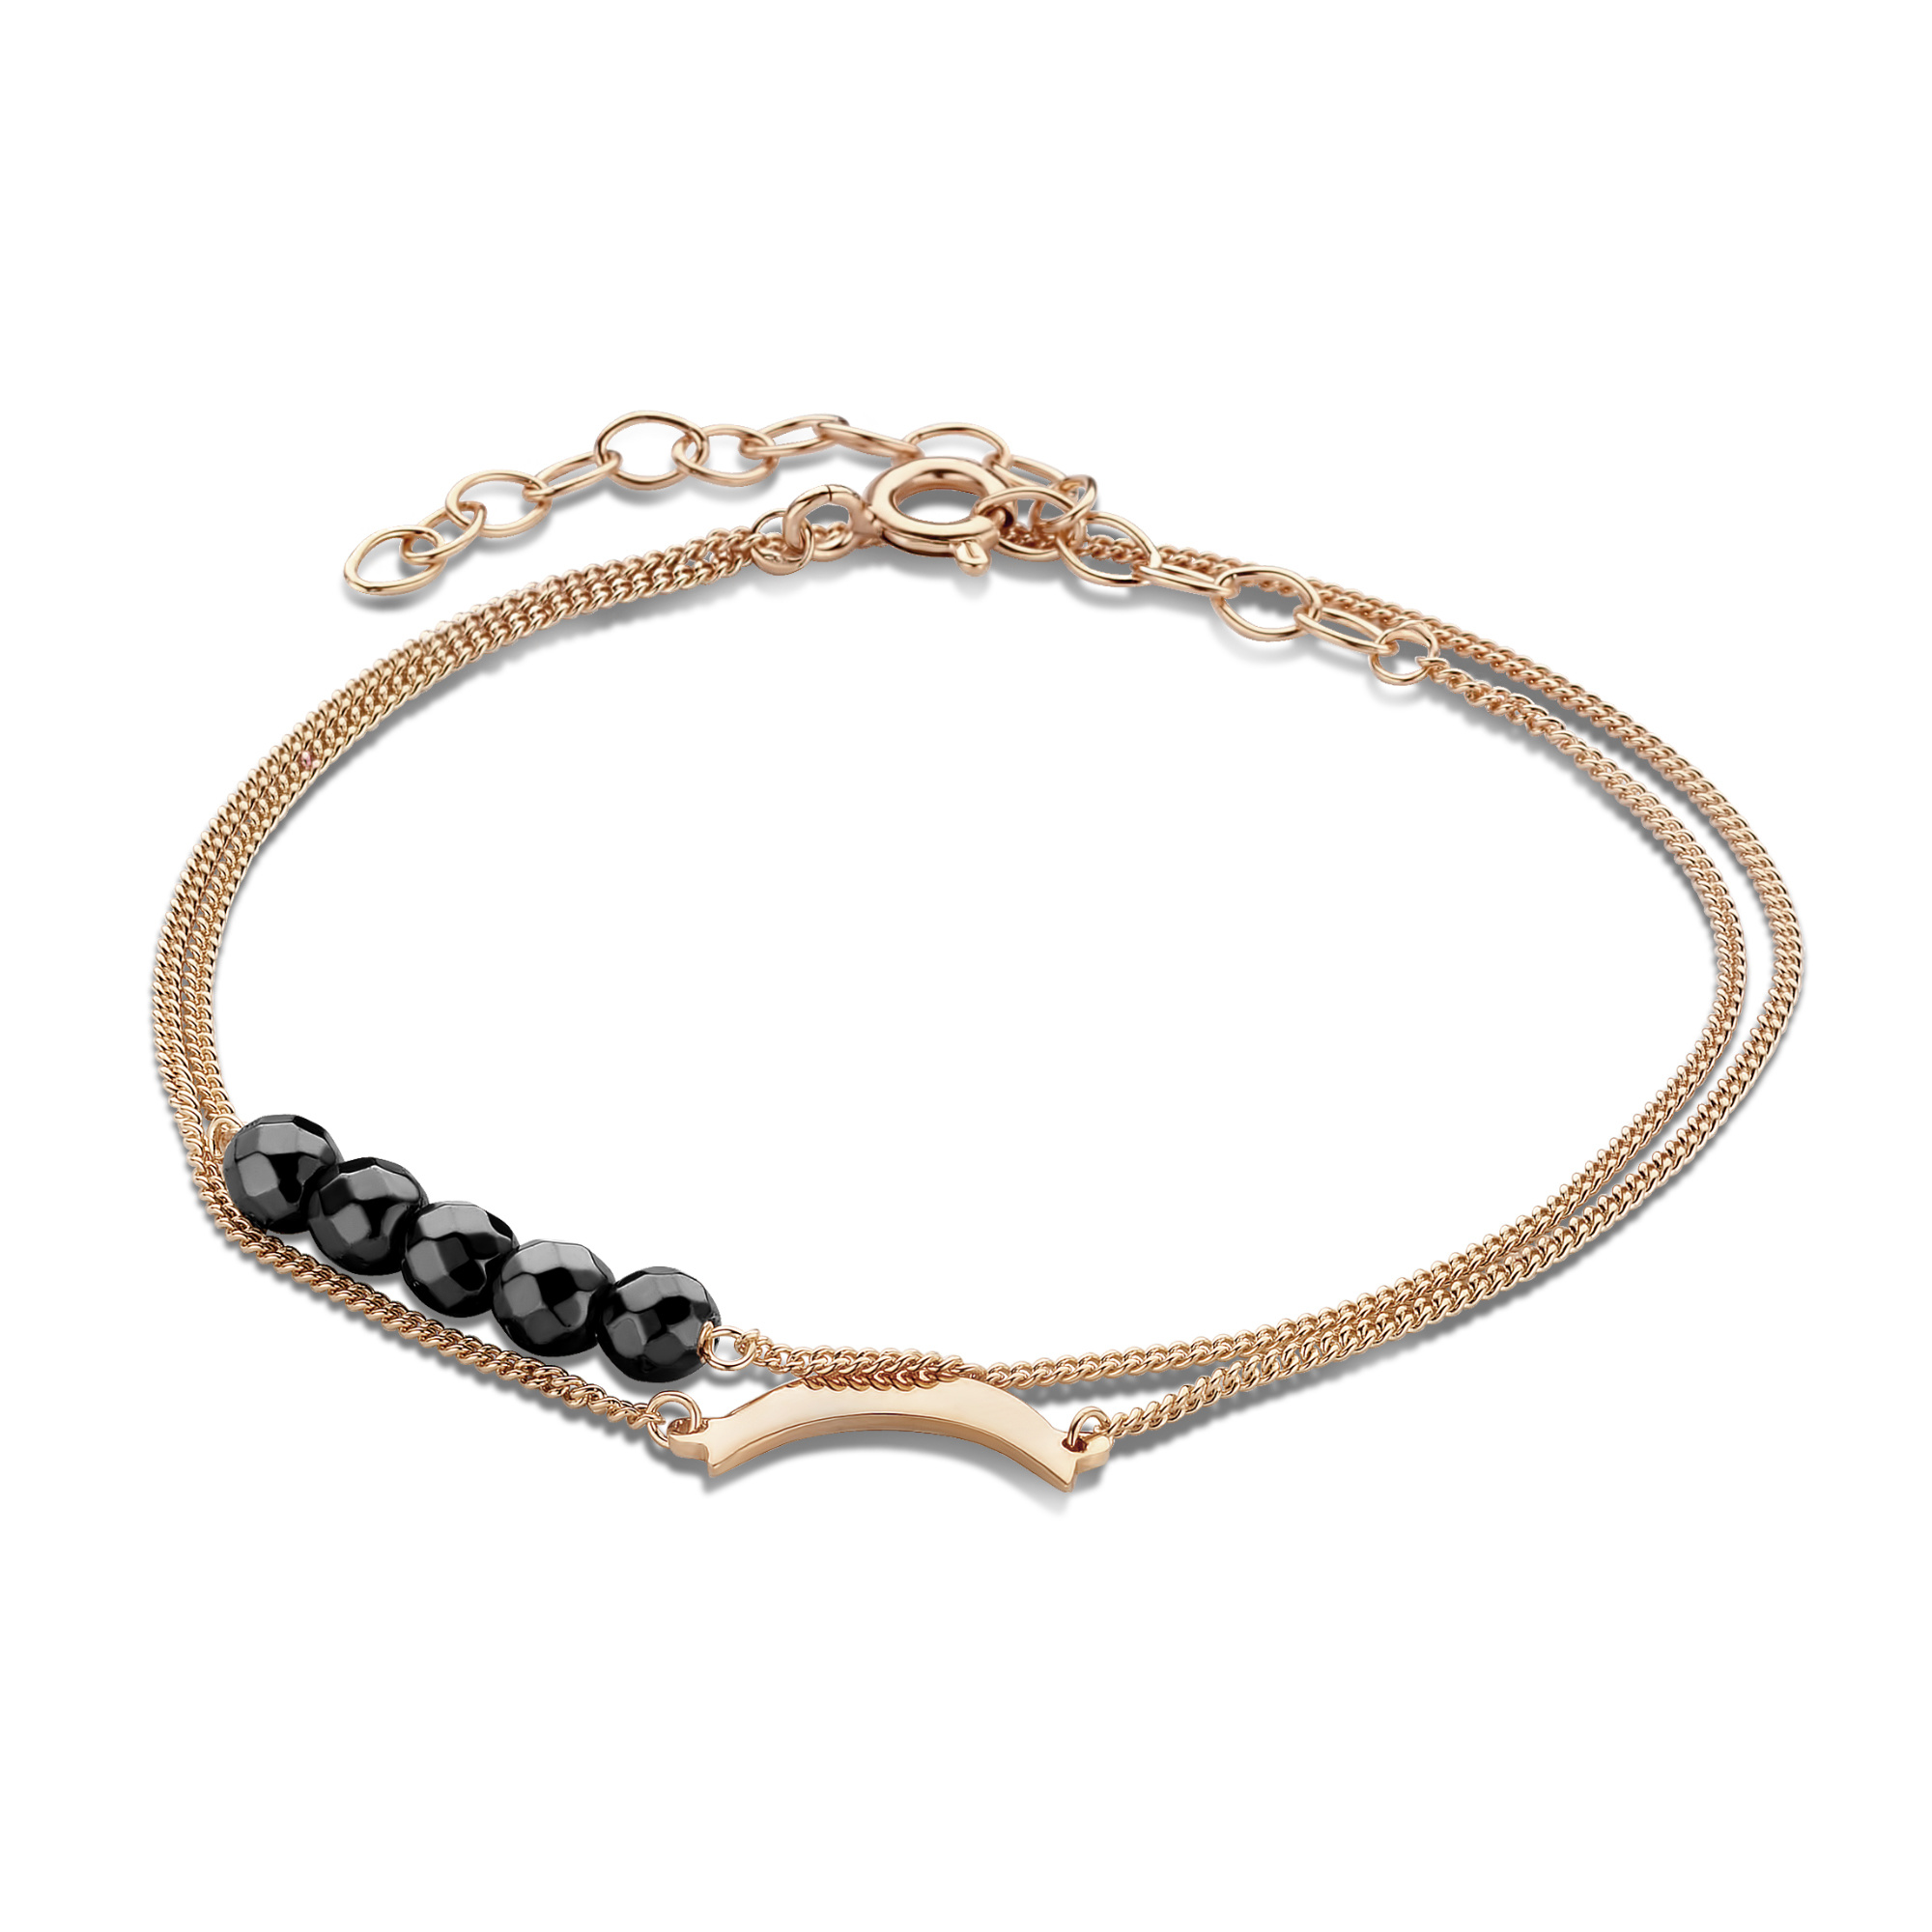 Violet Hamden Luna 925 sterling silver rose gold colored double bracelet with moon and hematite stones